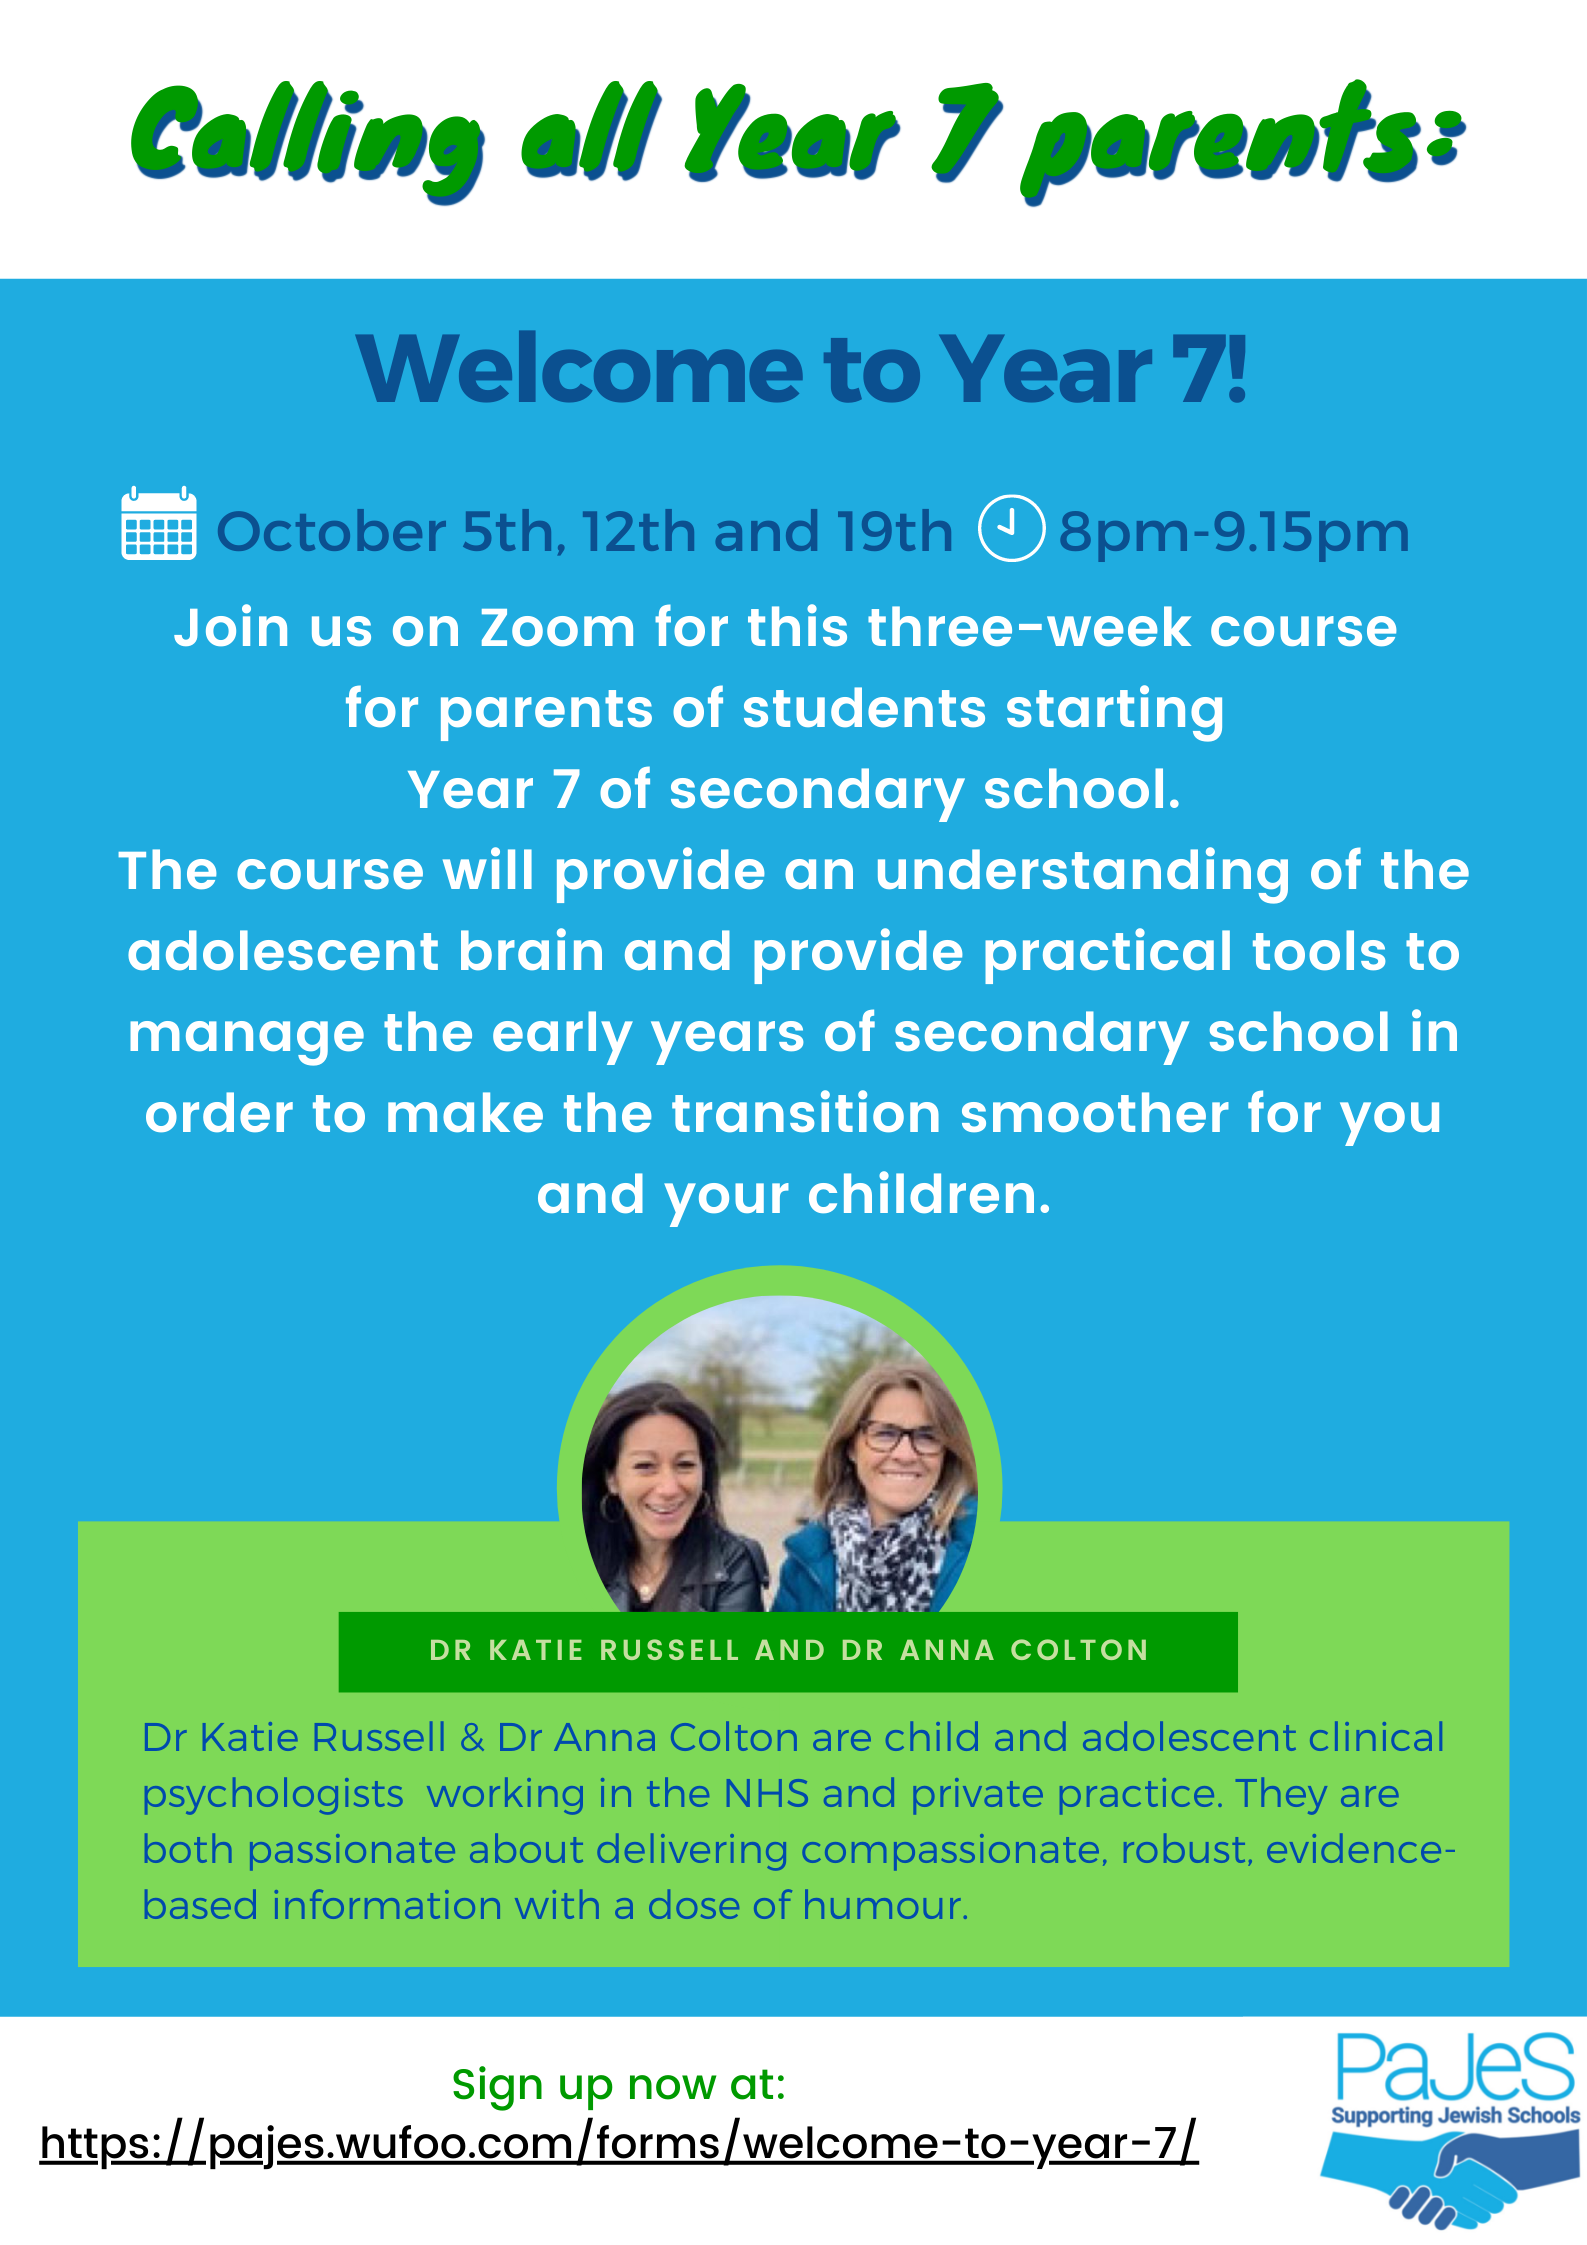 Welcome_to_Year_7_flyer.png